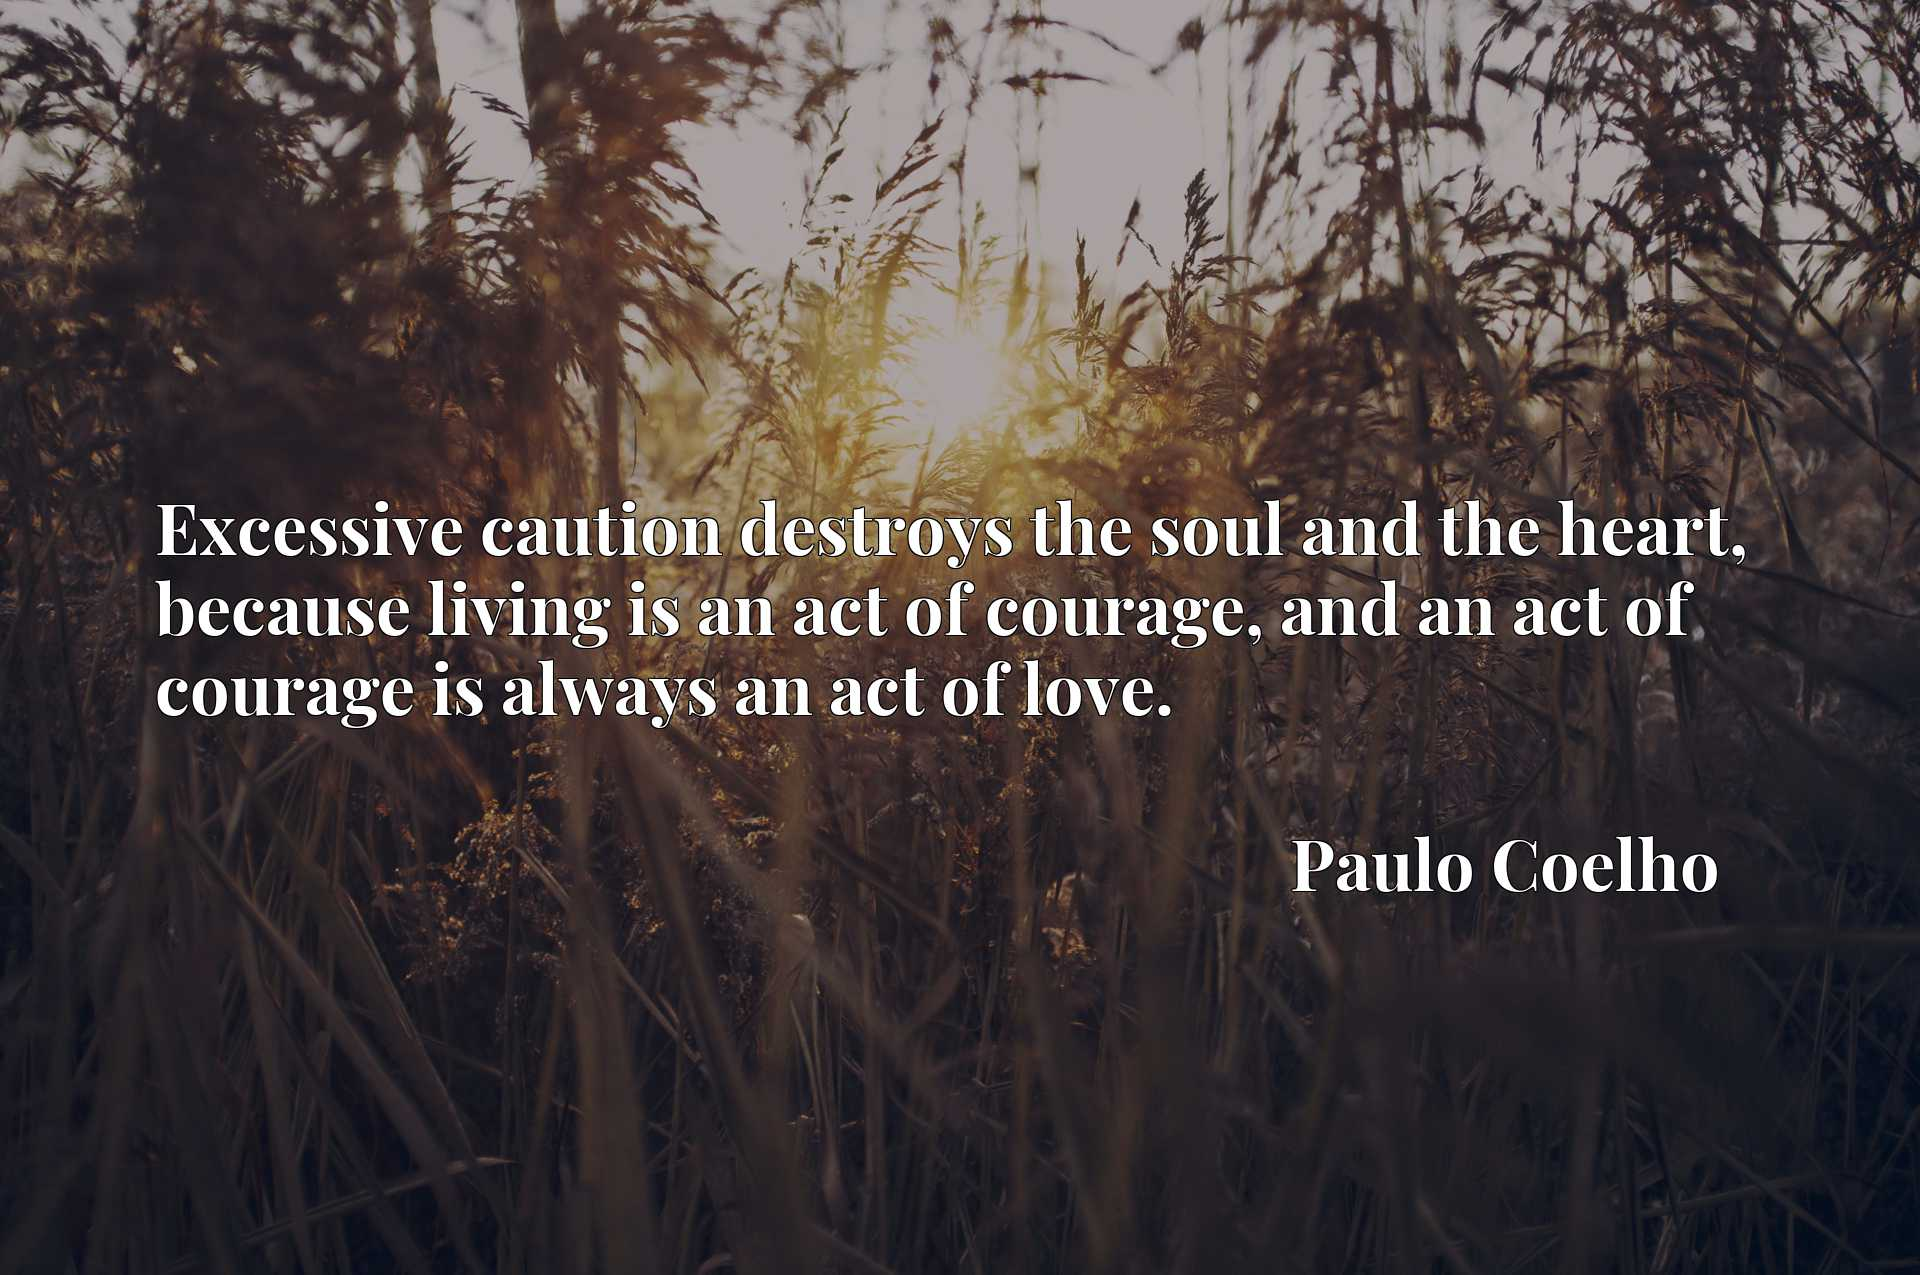 Excessive caution destroys the soul and the heart, because living is an act of courage, and an act of courage is always an act of love.